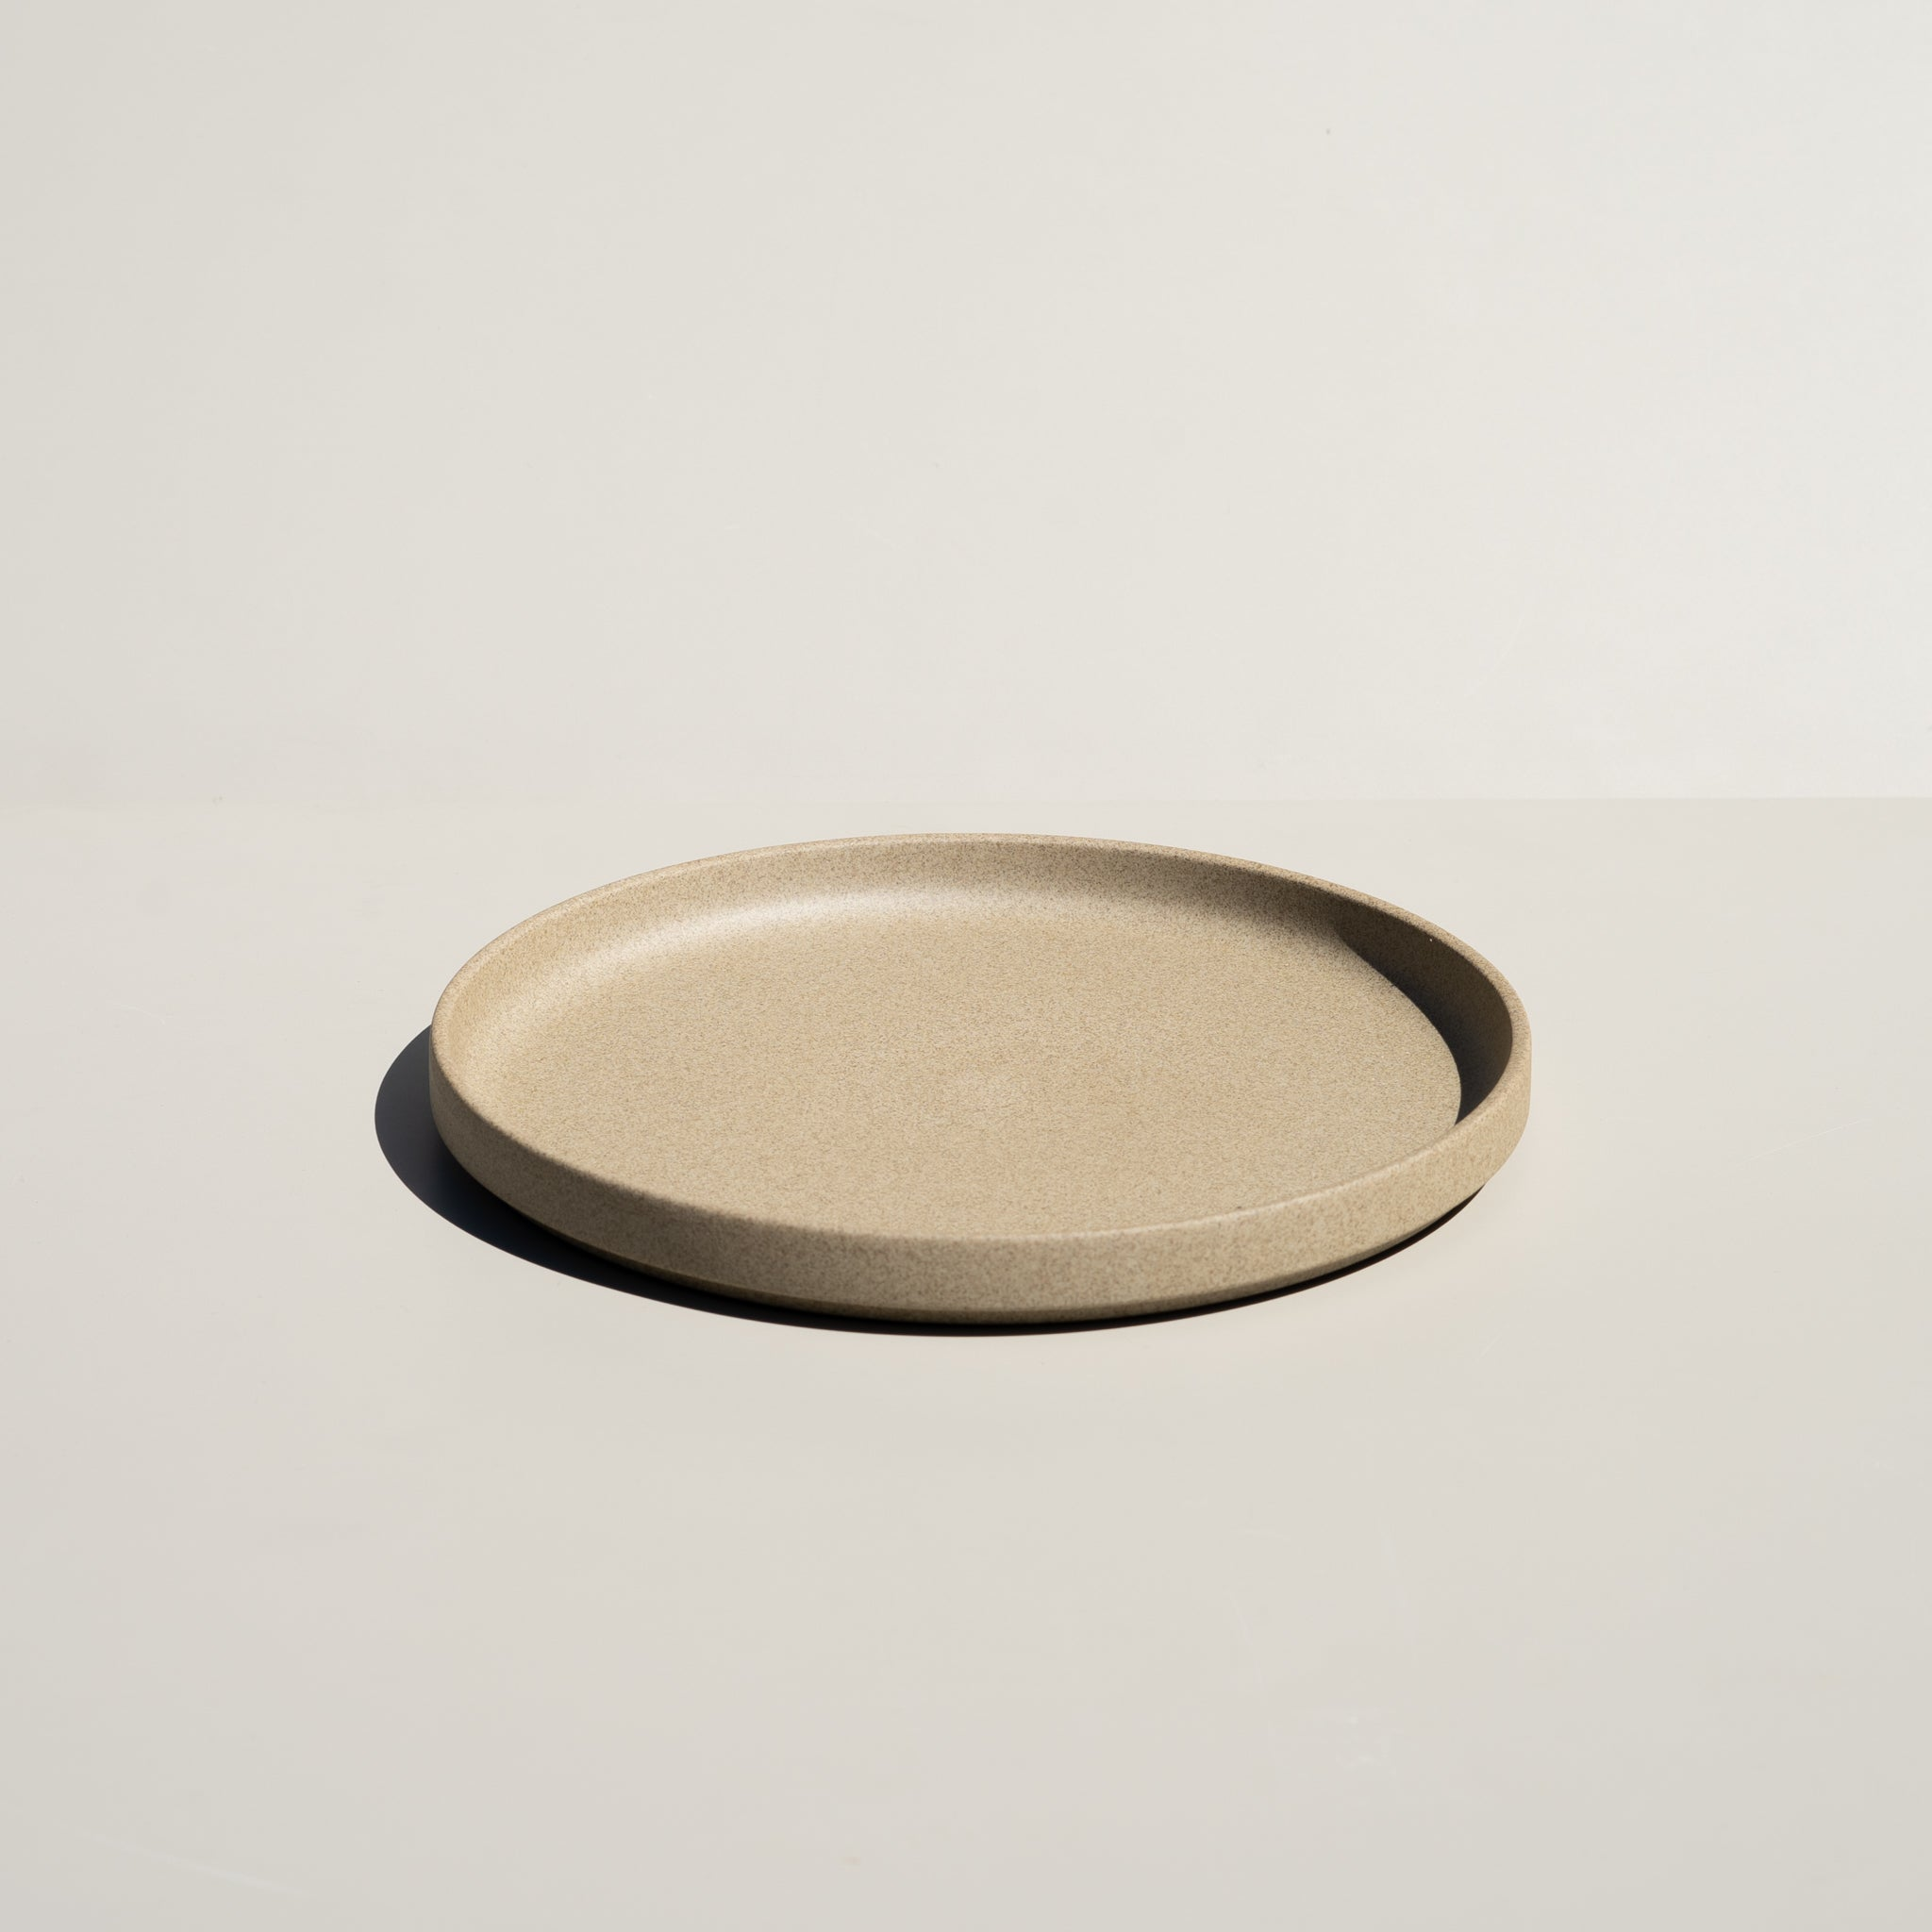 "Hasami Porcelain 8.5/8"" plate in natural finish."